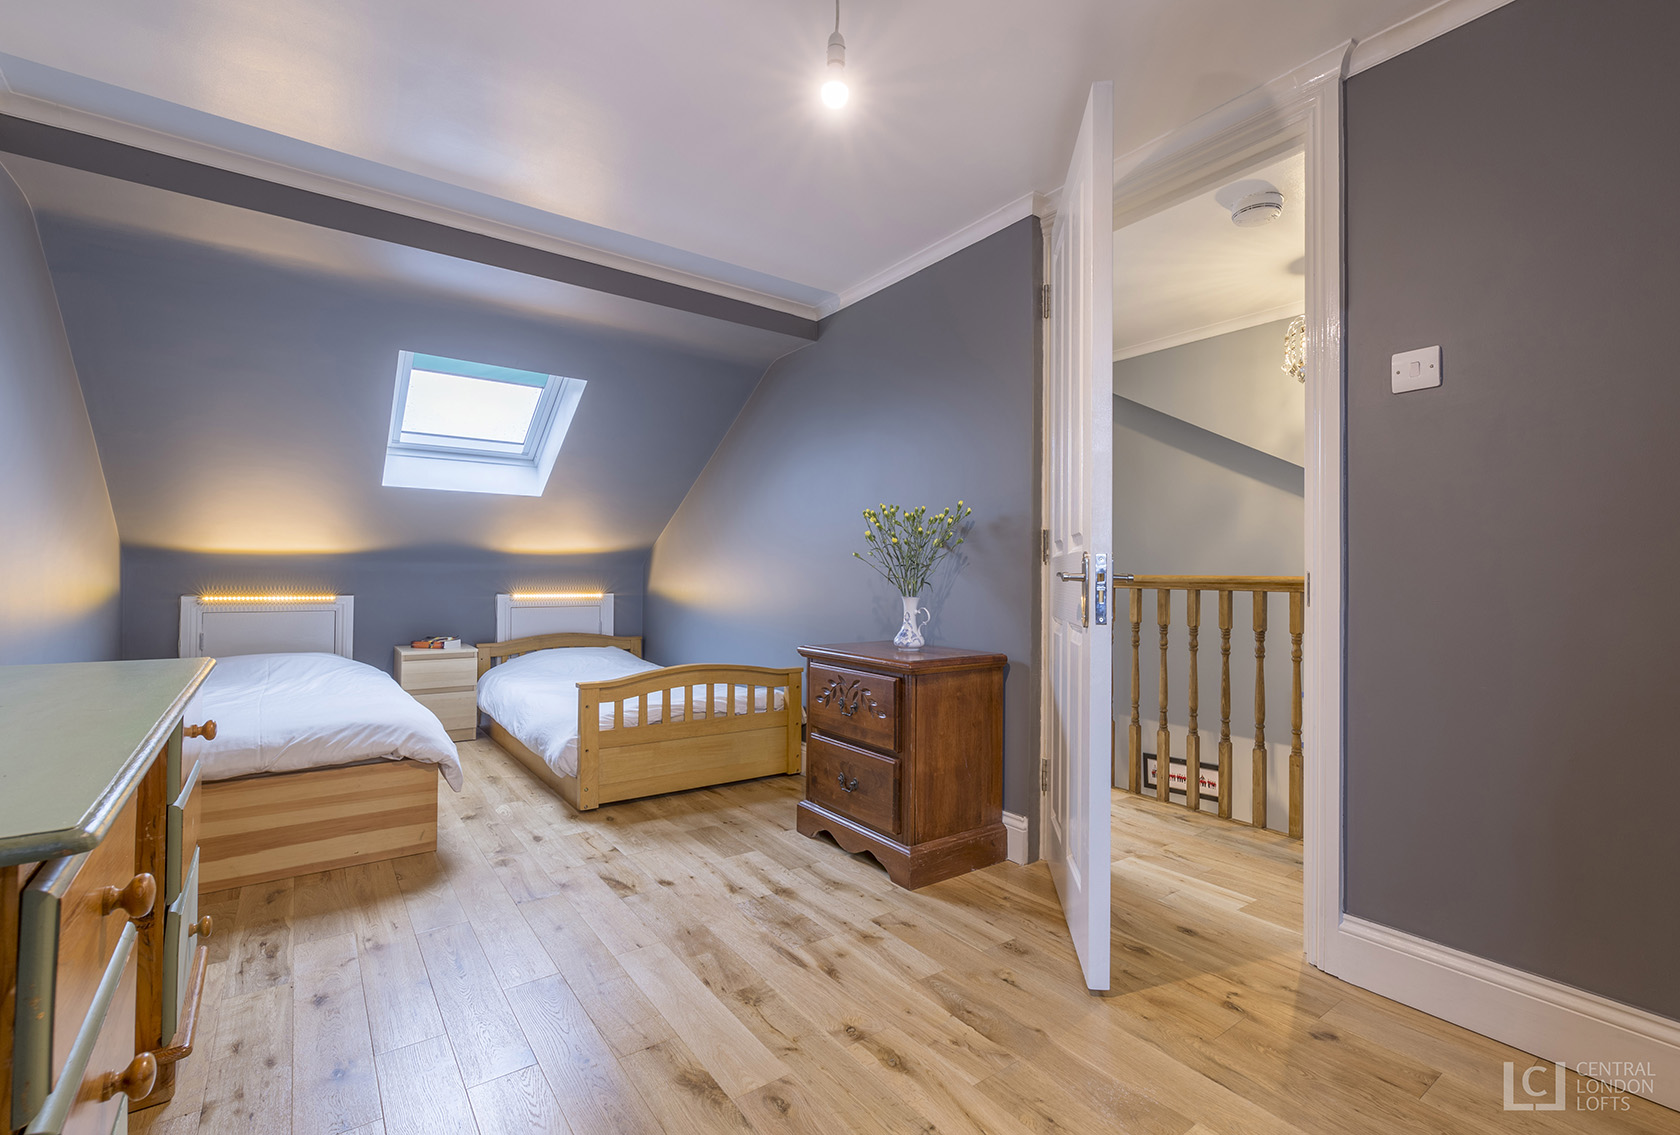 4 SOMERVILLE ROAD Loft Conversion 3